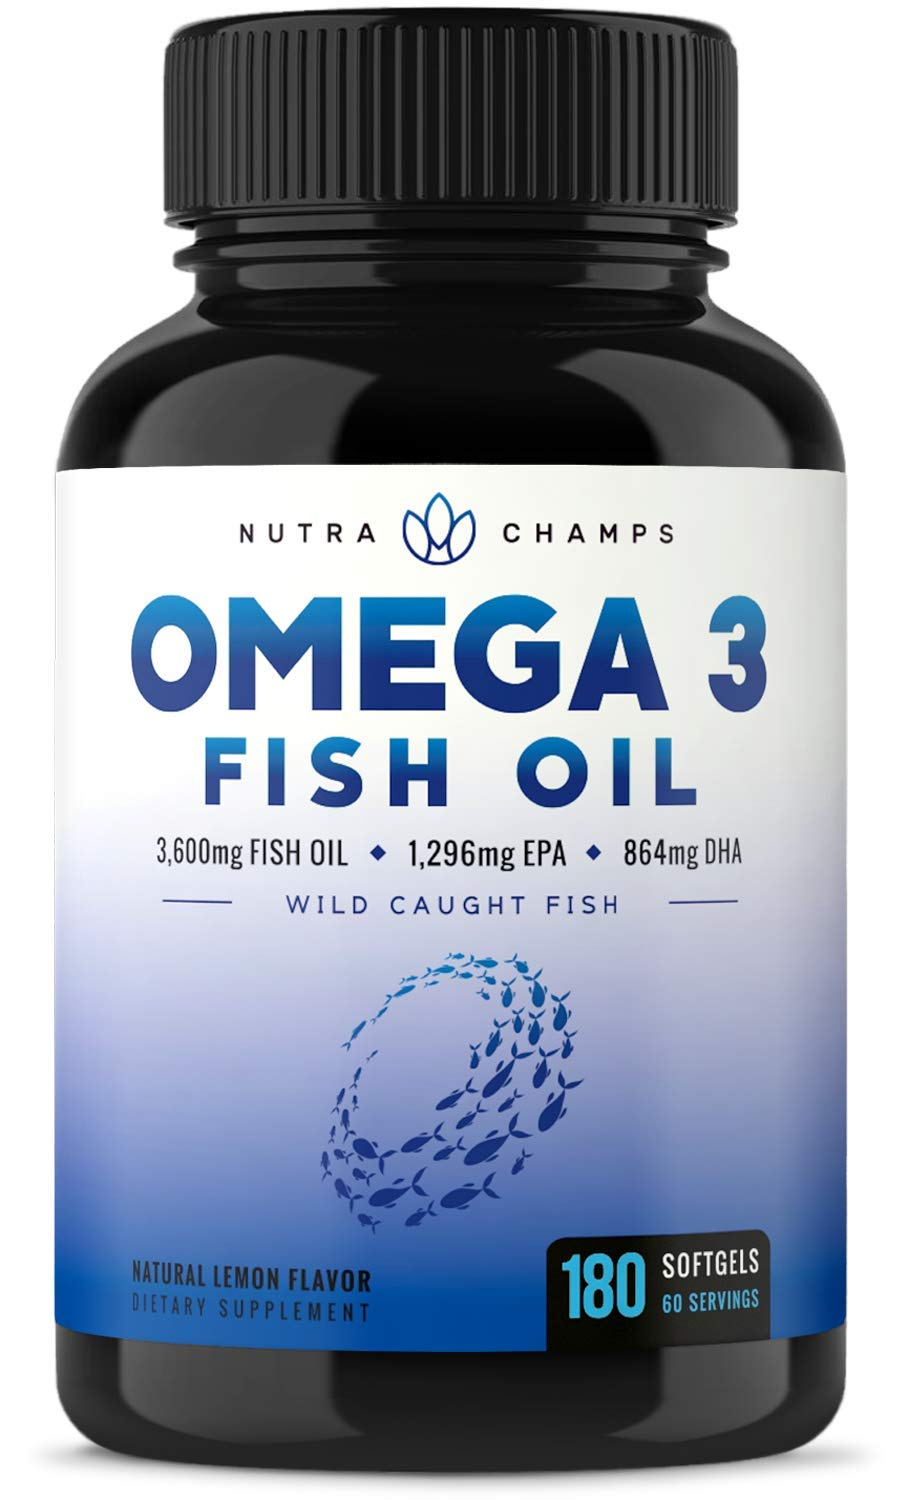 Omega 3 Fish Oil 3600mg, 180 Capsules - EPA 1296mg, DHA 864mg Fatty Acids - Omega-3 Burpless Pills - Highest Concentration Available for Joint Support, Immune, Heart Health, Brain, Eyes, Skin by NutraChamps